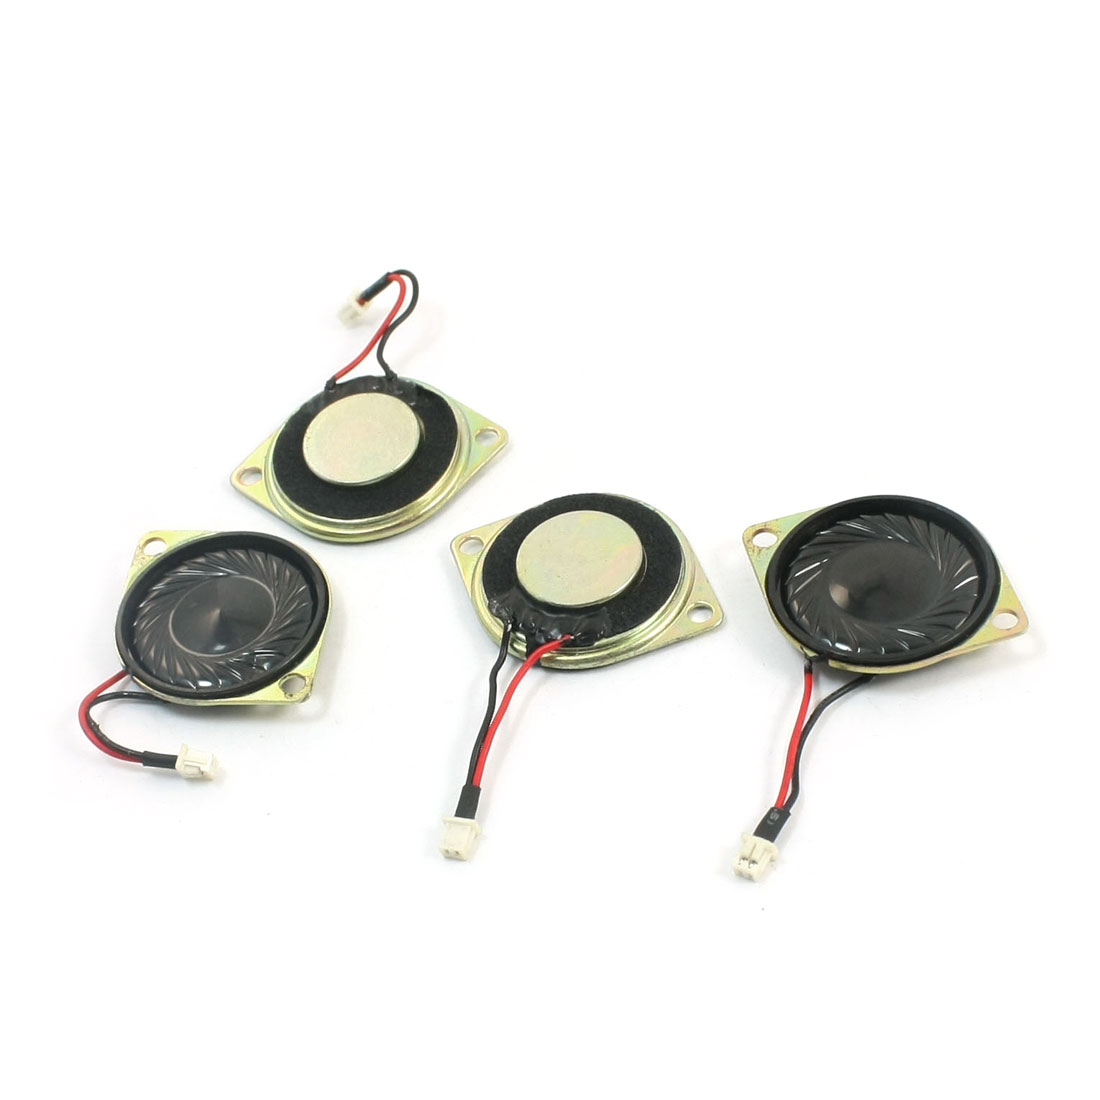 4Pcs 28mm Dia 4-Pin Balance Plug Connect Metal Case Magnet Speaker Audio Amplifier Loudspeaker 2W 8 Ohm for Music Player